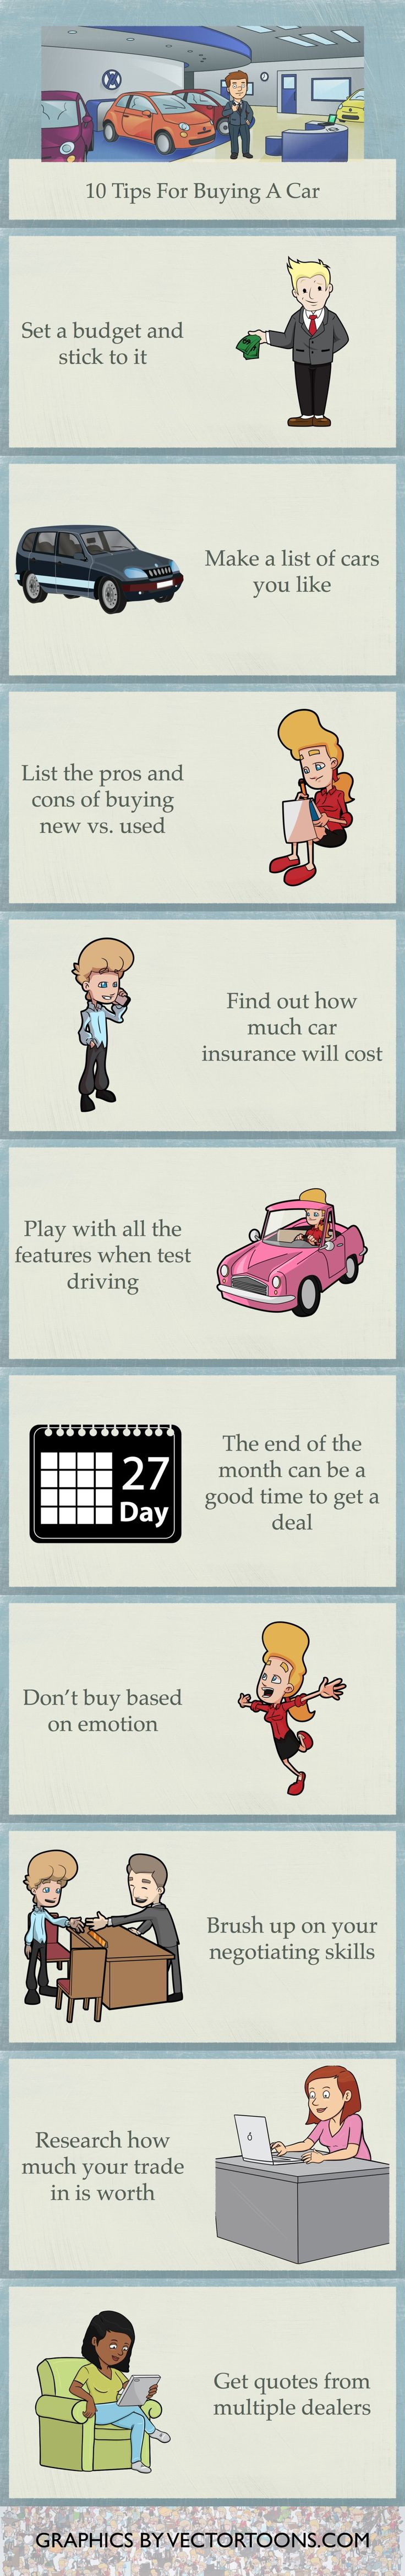 10 10 tips for car buying - Infographic 10 Tips For Buying A Car Infographic Tips Life Hacks Lifehacks Vector Clipart Stock Infographics Pinterest Cars 10 And